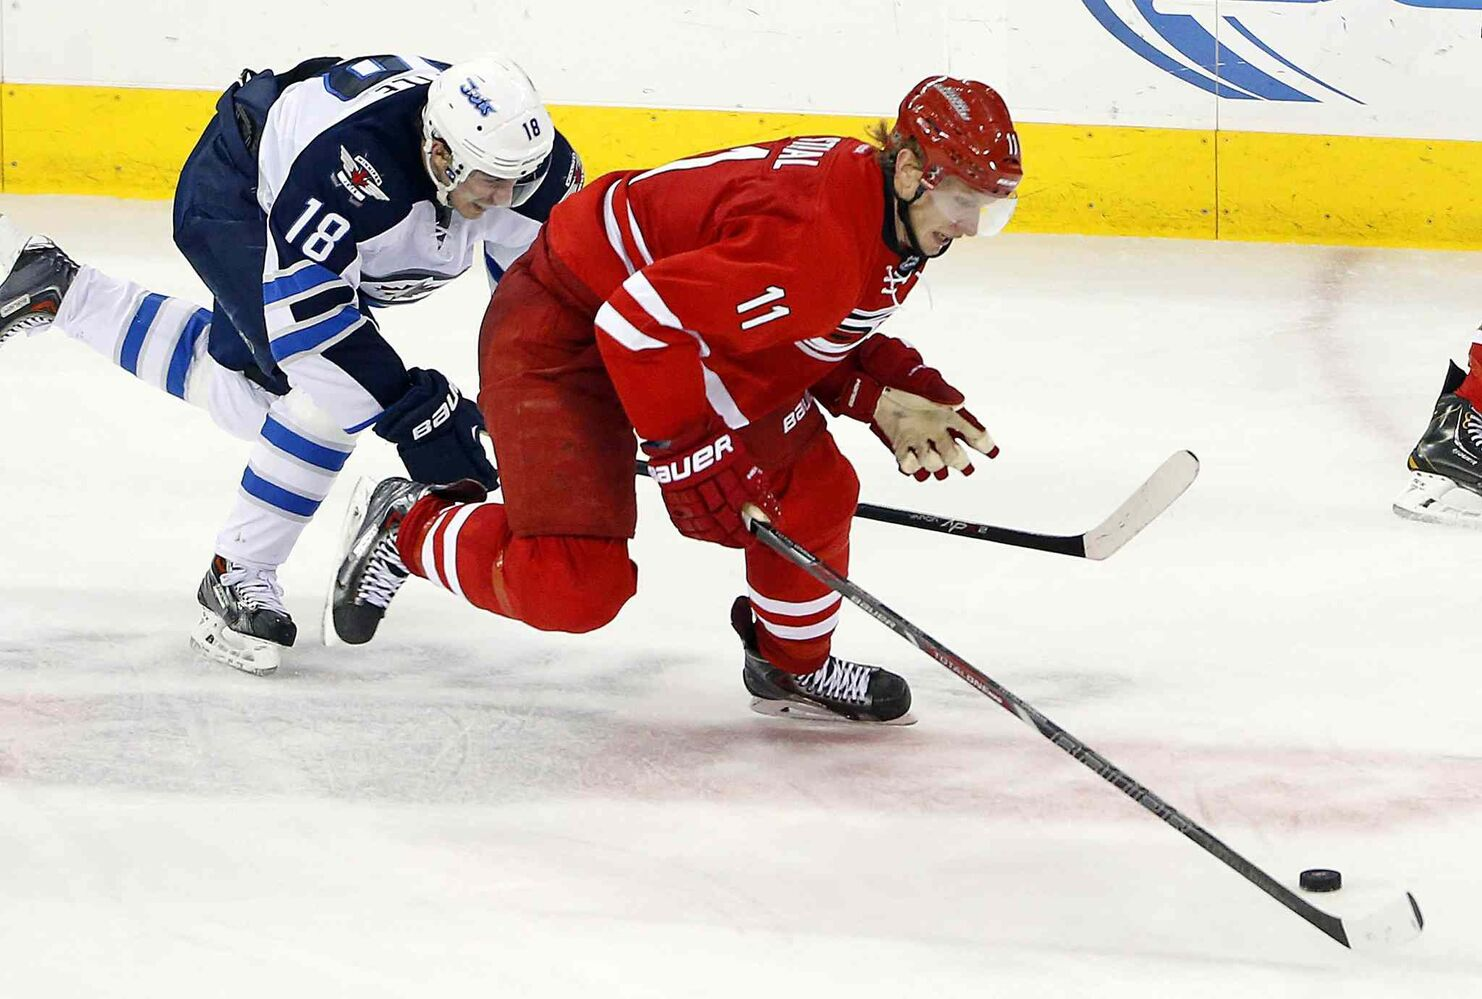 Carolina Hurricanes' Jordan Staal (11) tries to skate away from Winnipeg Jets' Bryan Little (18) during the third period of Tuesday's game.